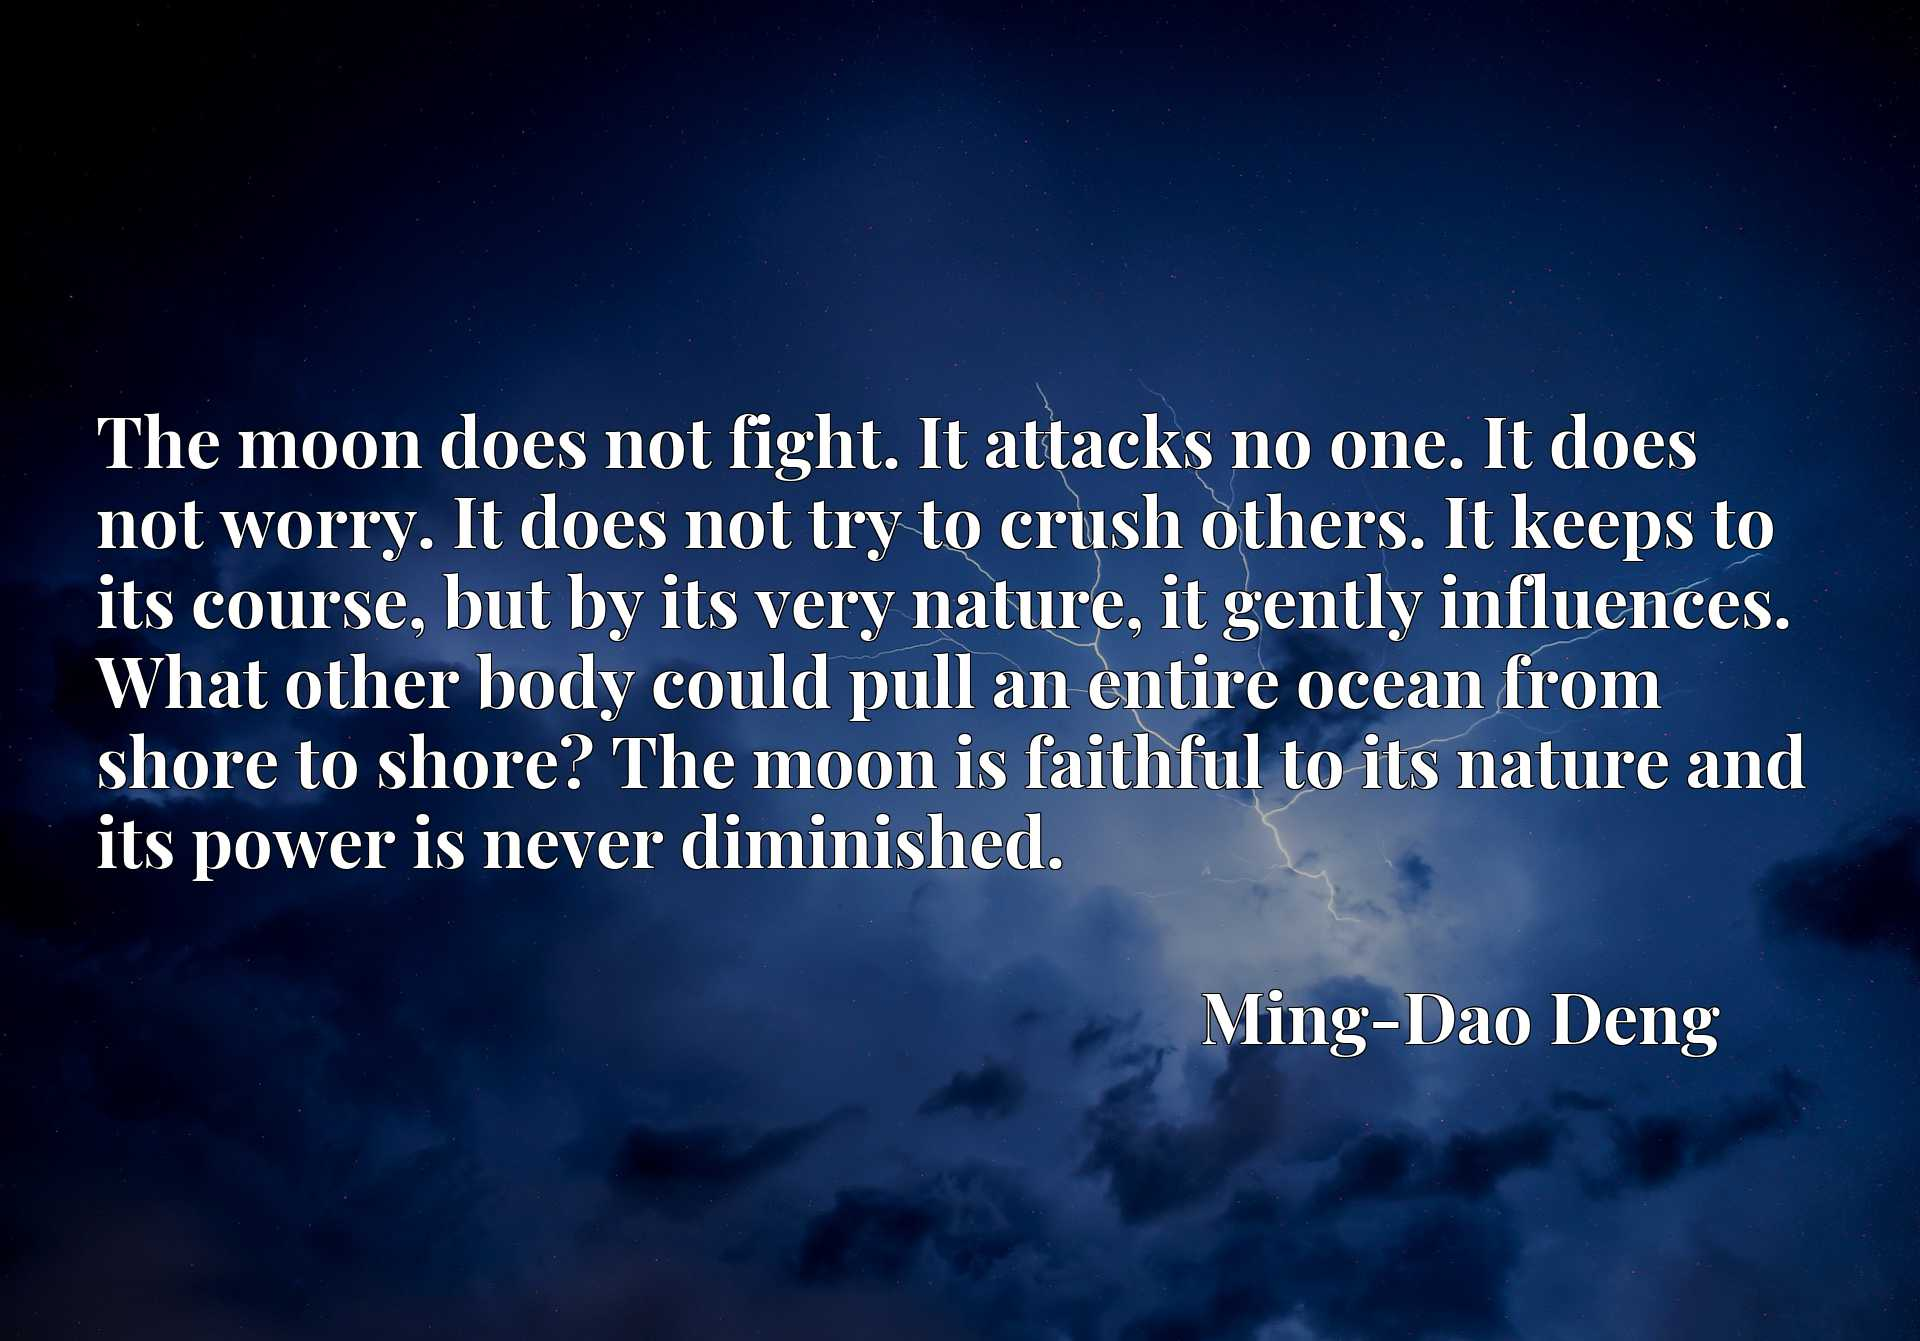 The moon does not fight. It attacks no one. It does not worry. It does not try to crush others. It keeps to its course, but by its very nature, it gently influences. What other body could pull an entire ocean from shore to shore? The moon is faithful to its nature and its power is never diminished.